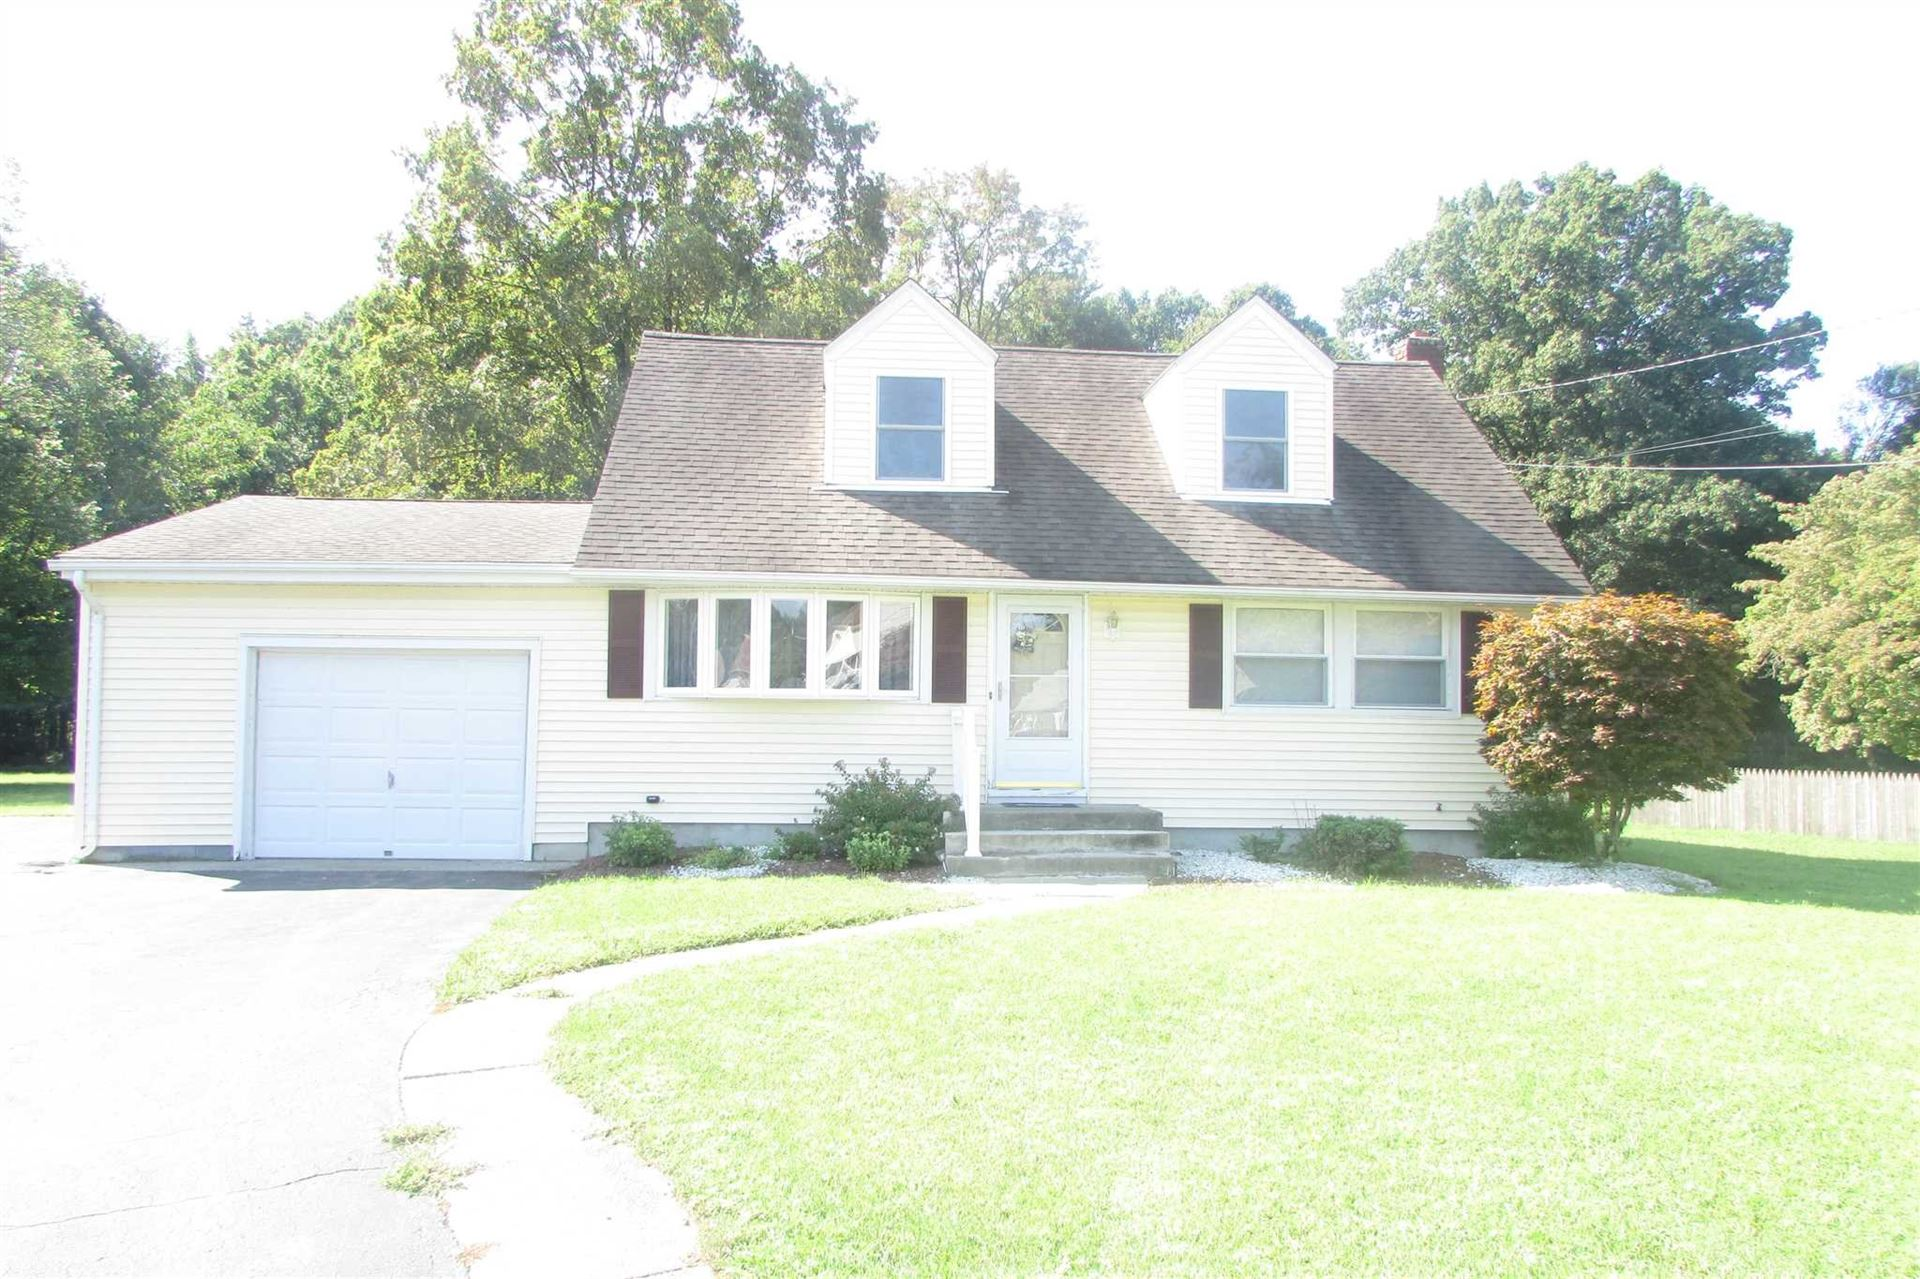 22 PHYLLIS RD, Wappingers Falls, NY 12590 - #: 403100